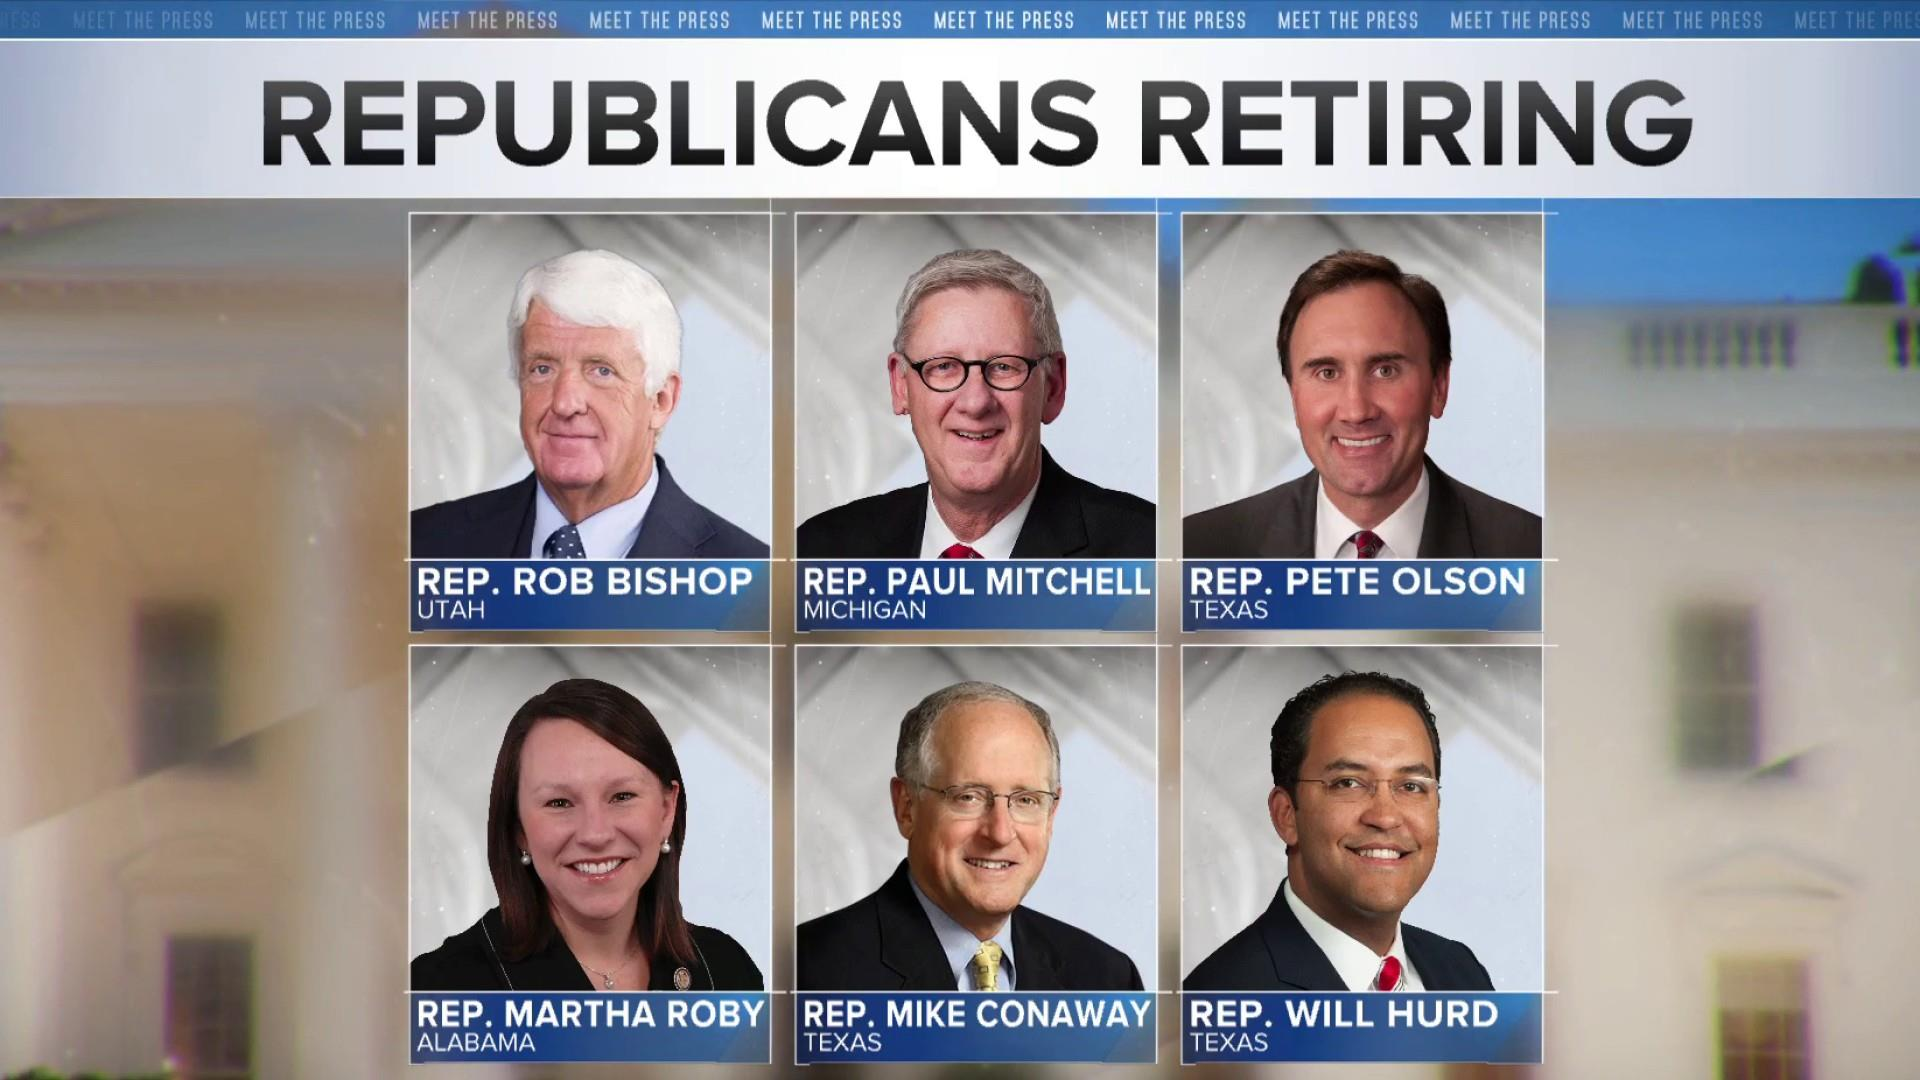 Rep. Will Hurd's retirement announcement becomes sixth GOP exit in two weeks